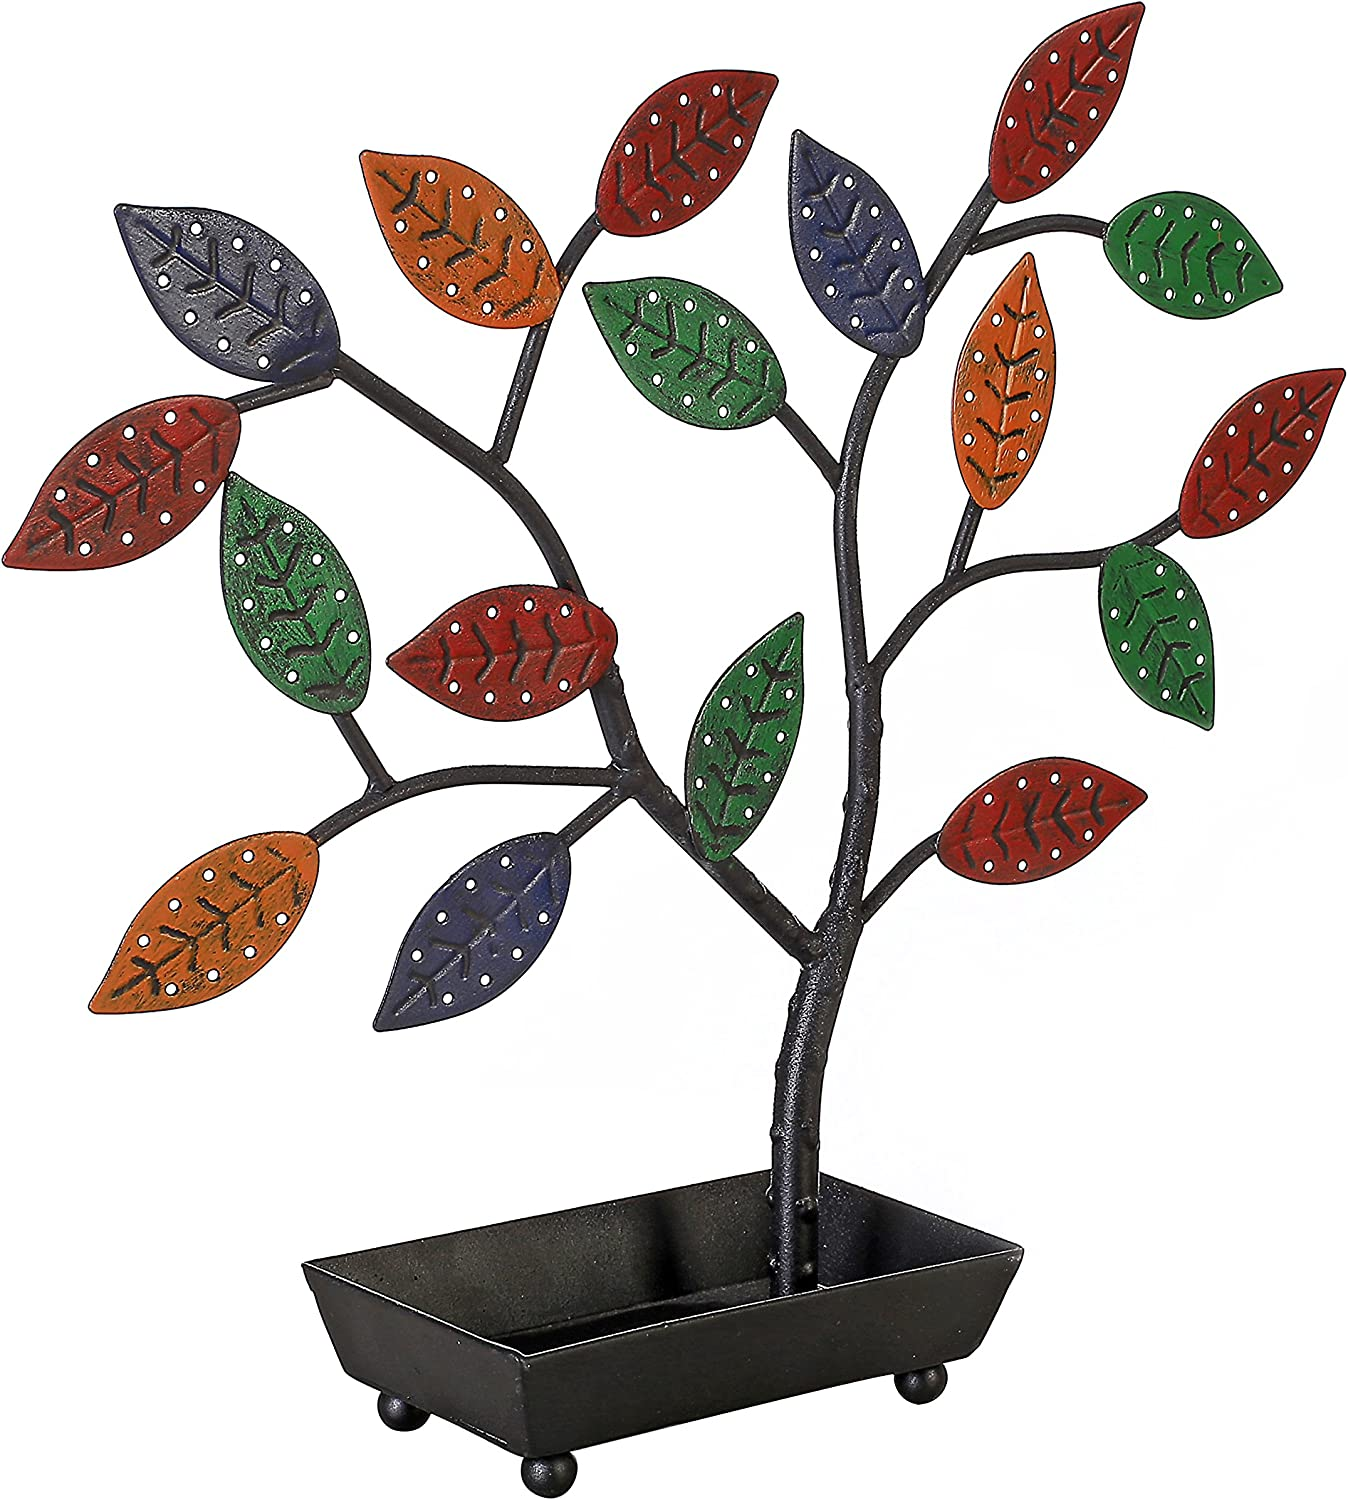 MyGift Jewelry Tree, Earring Necklace Hanger Holder with Ring Dish Tray, Multicolored